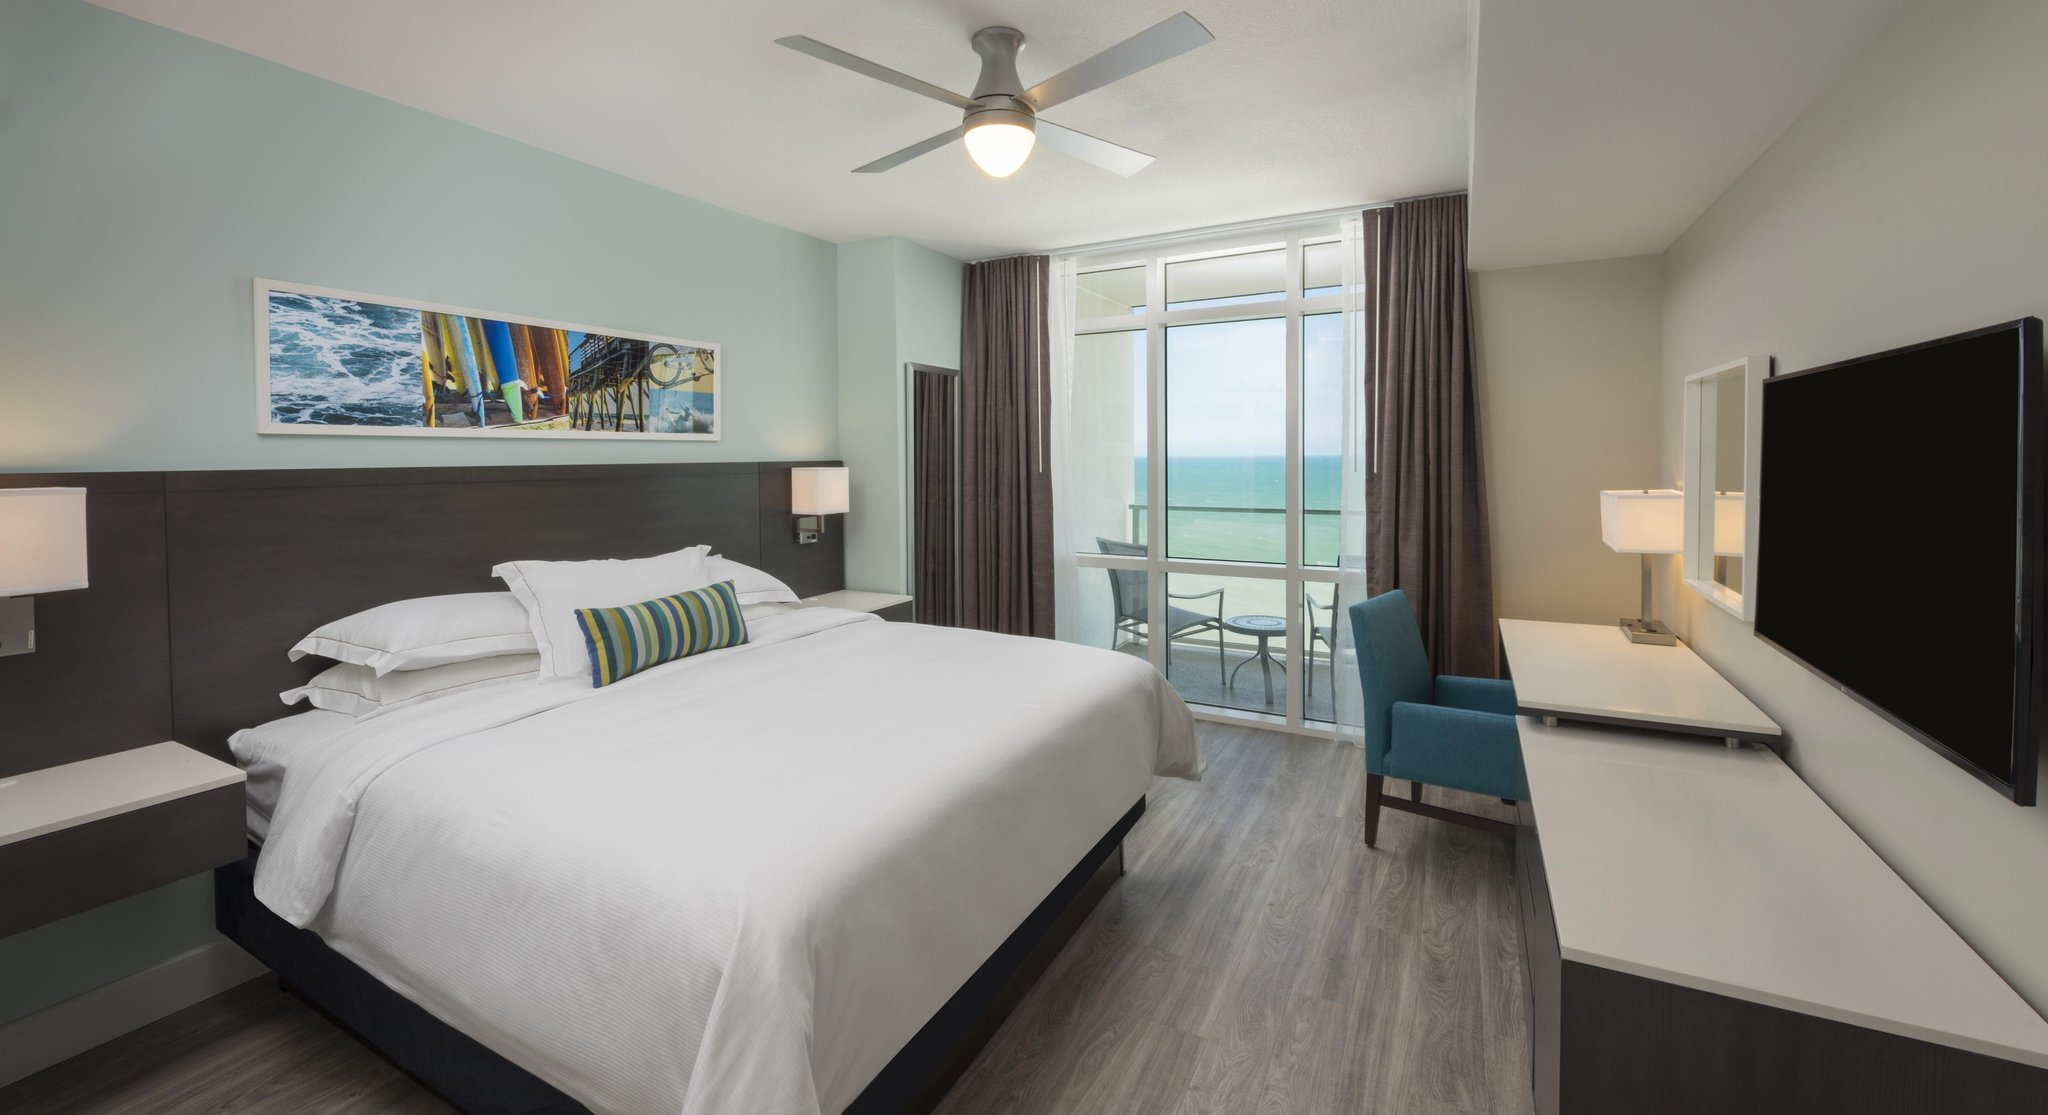 2017 hotel reviews price comparison myrtle beach sc tripadvisor